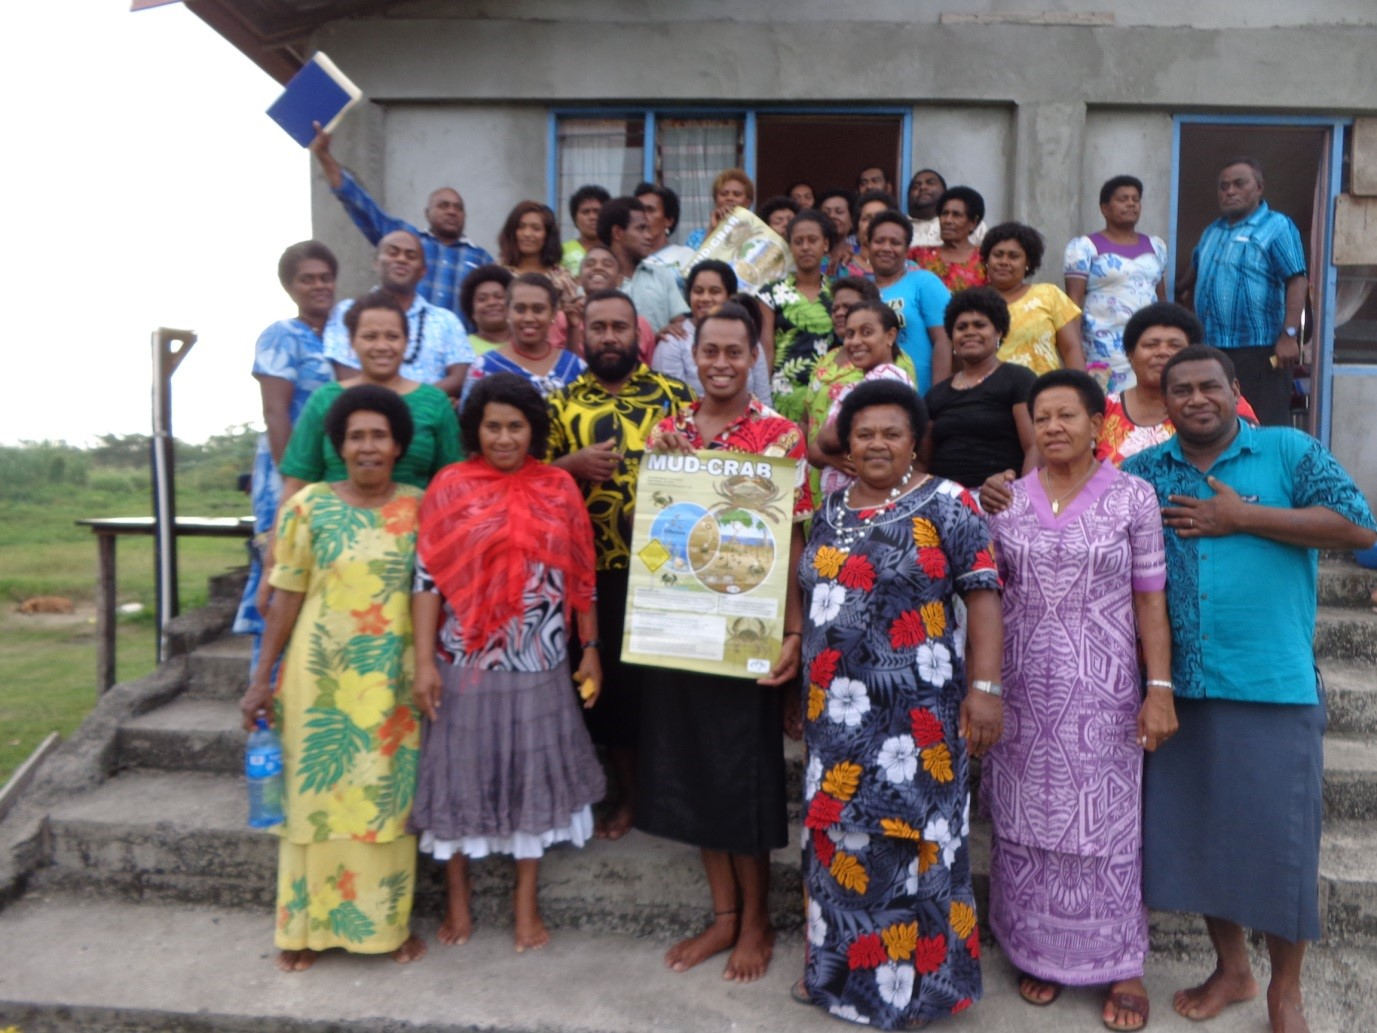 Tavua Mud Crab Workshop June 2017 _Group photo